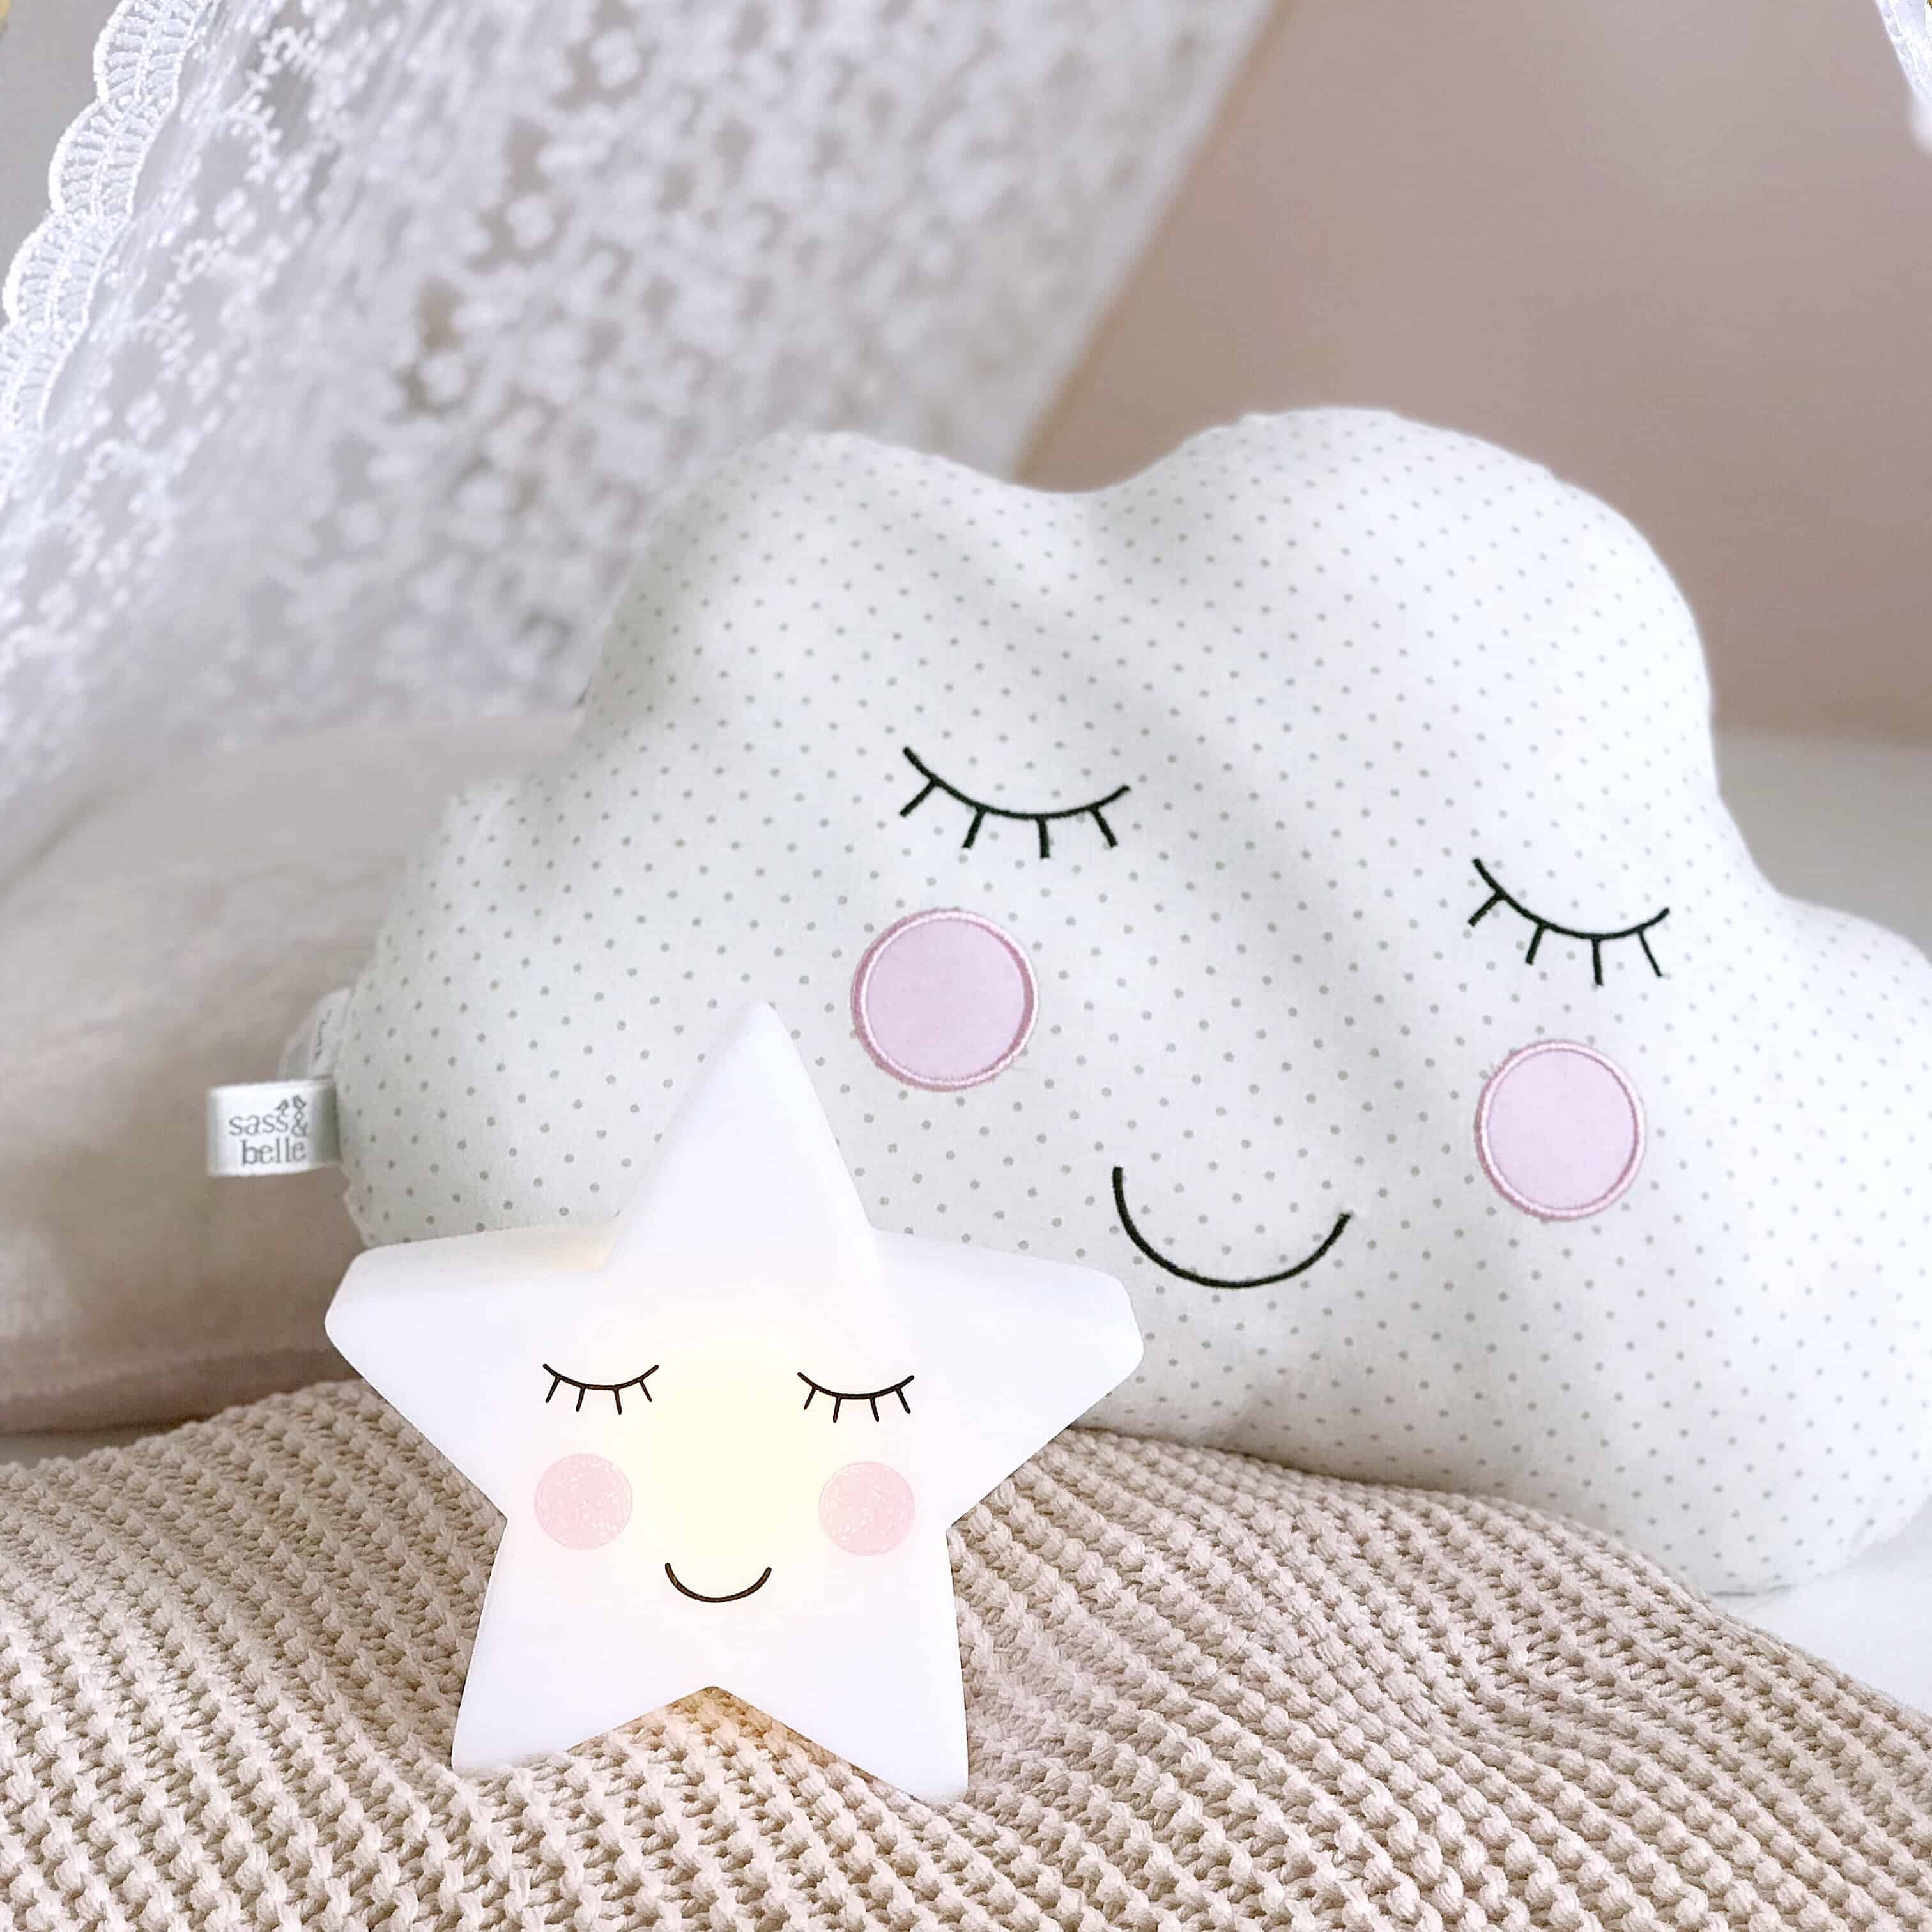 Star night light and cloud cushion